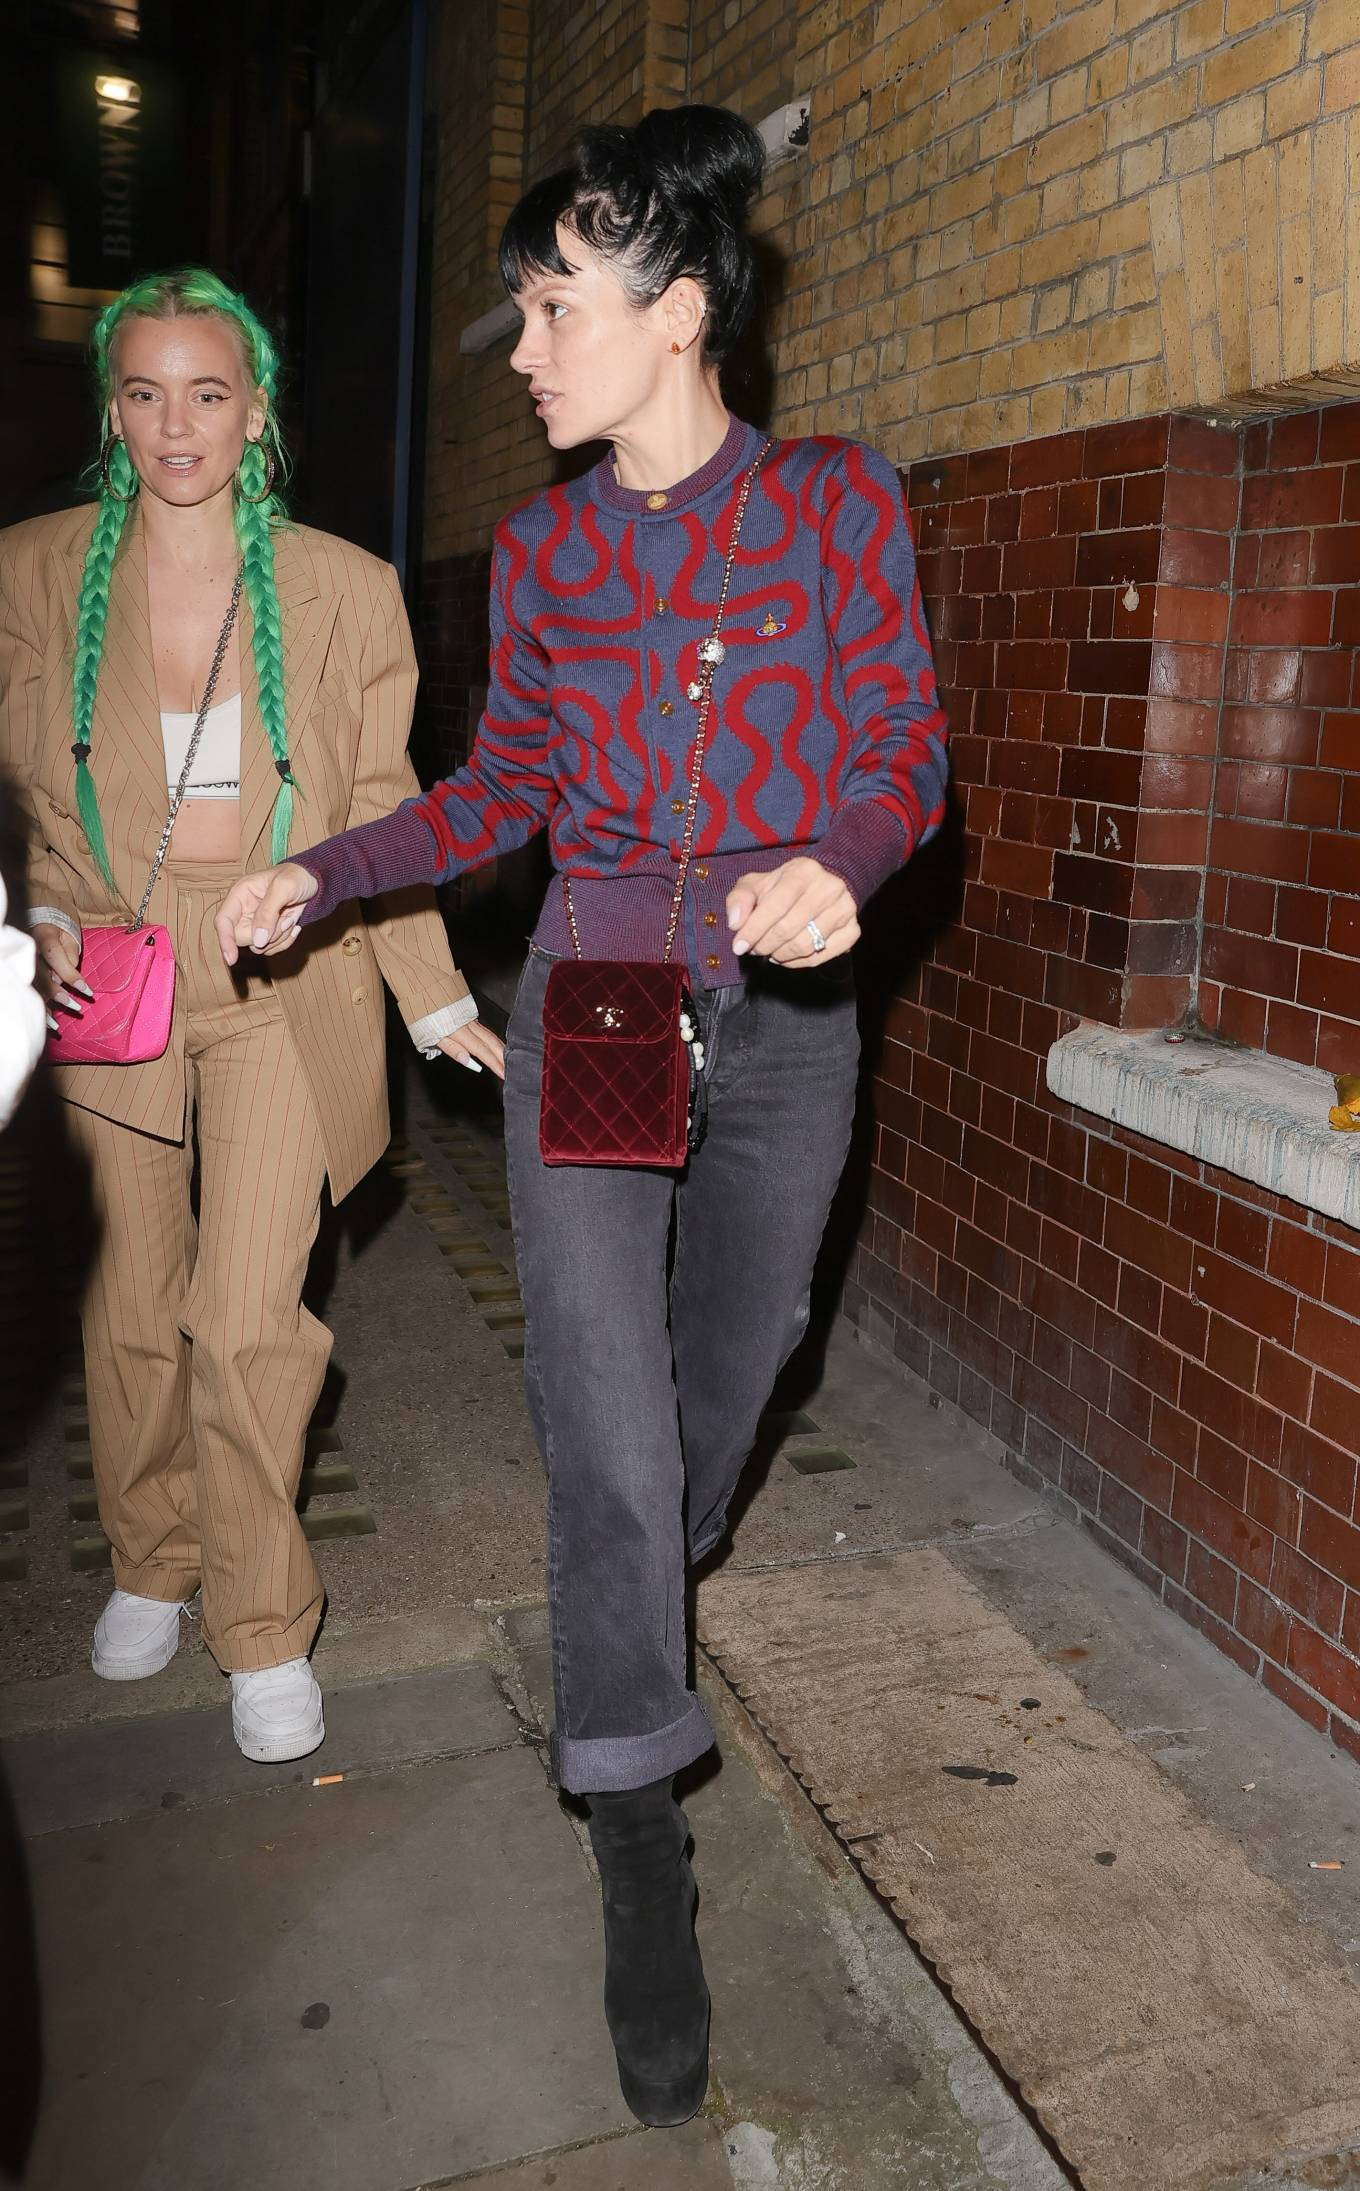 Lily Allen - Pictured at 2.22 Ghost Story theatre production in London